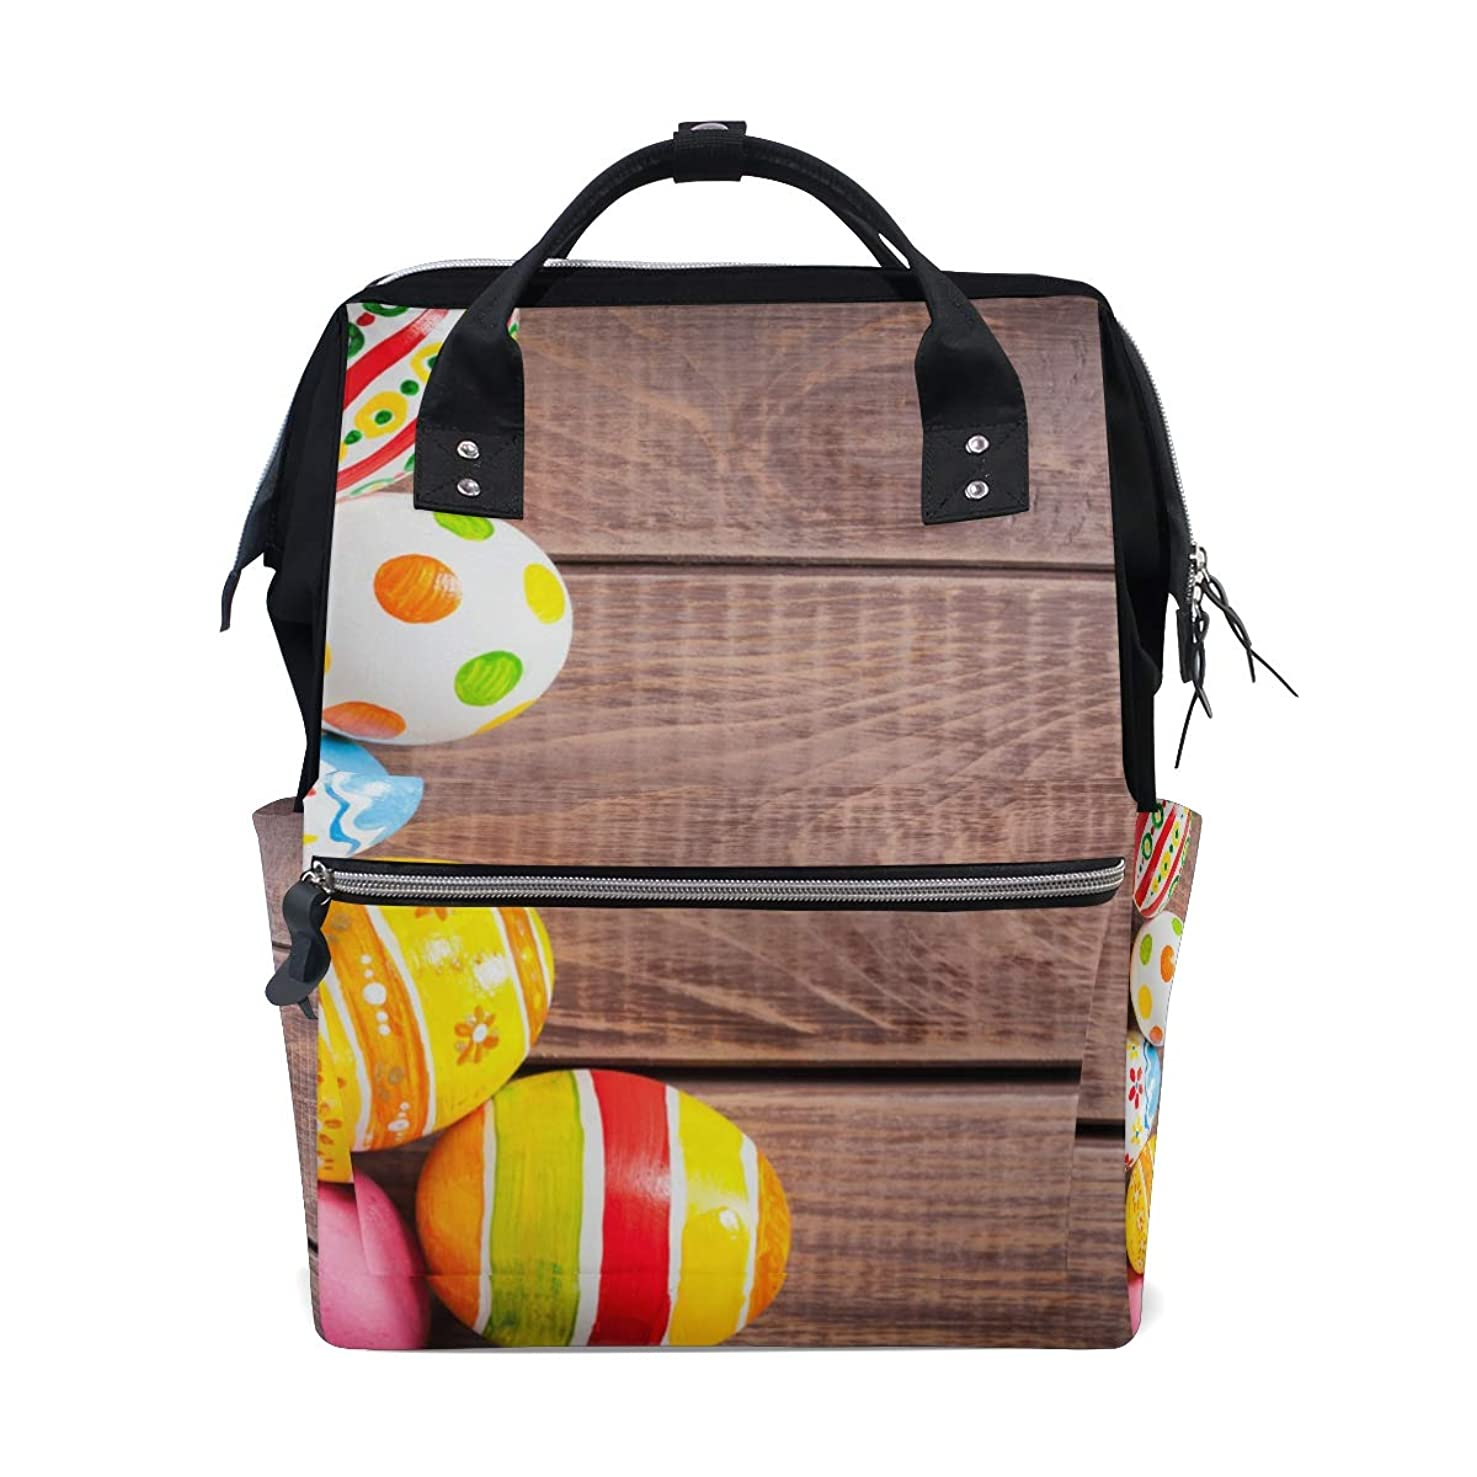 Colorful Easter Eggs Wooden School Backpack Large Capacity Mummy Bags Laptop Handbag Casual Travel Rucksack Satchel For Women Men Adult Teen Children